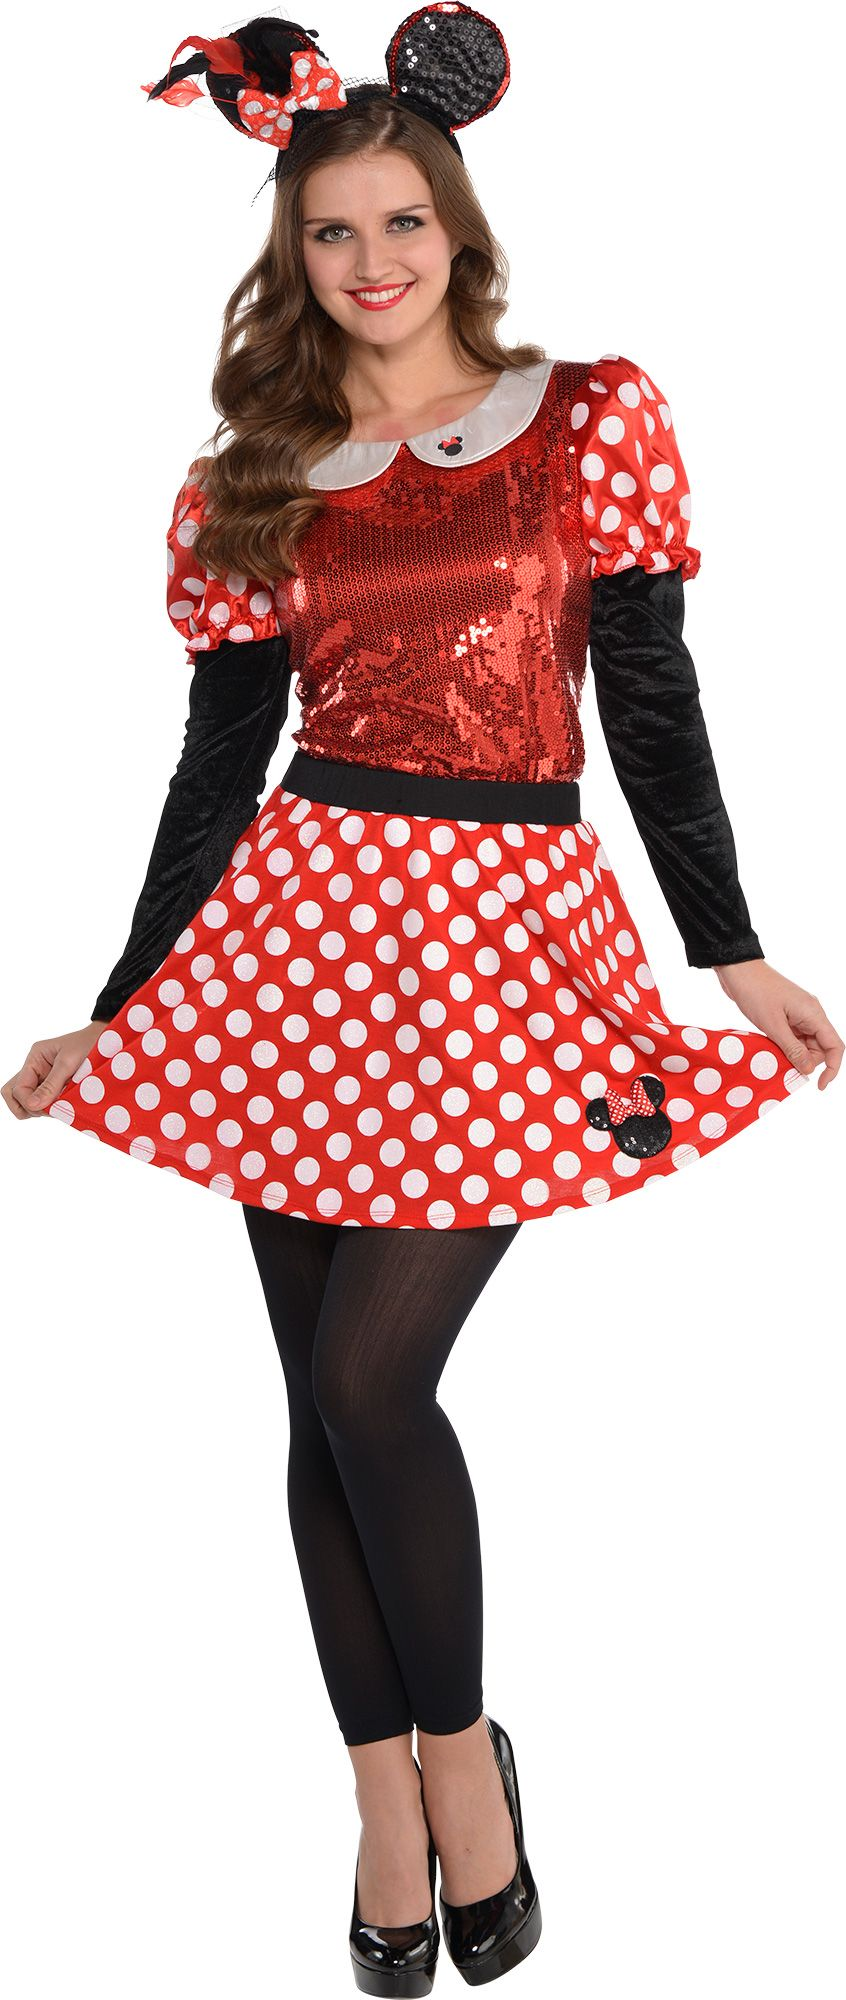 Make Your Costume - Womens Minnie Mouse #1